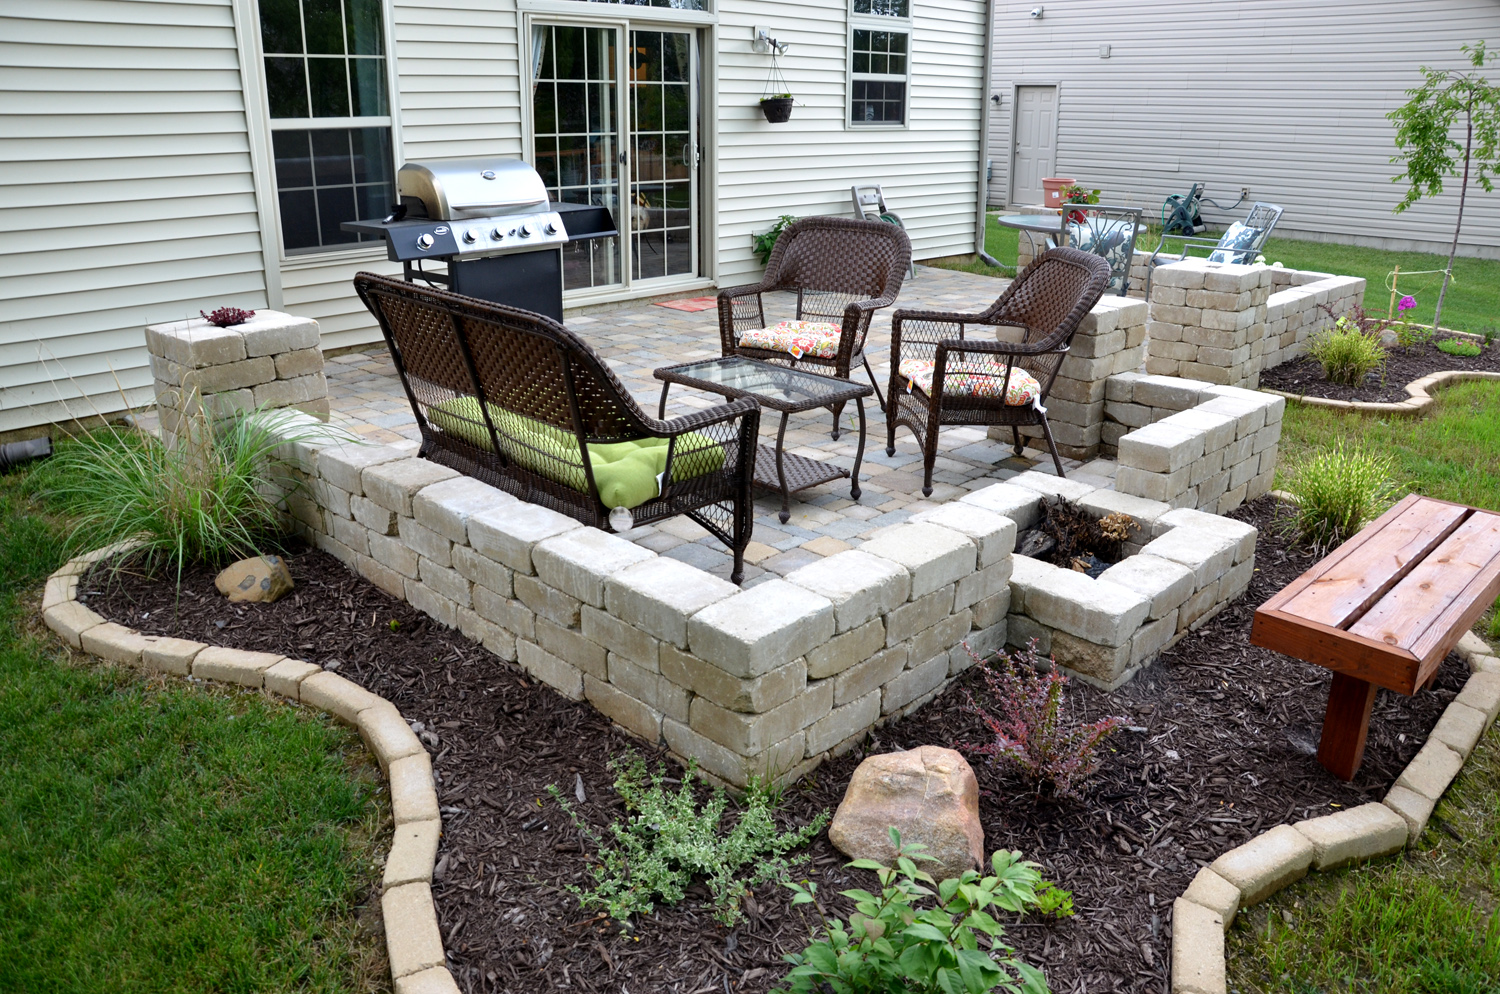 DIY backyard paver patio outdoor oasis tutorial | The ... on Yard Paver Ideas  id=13389